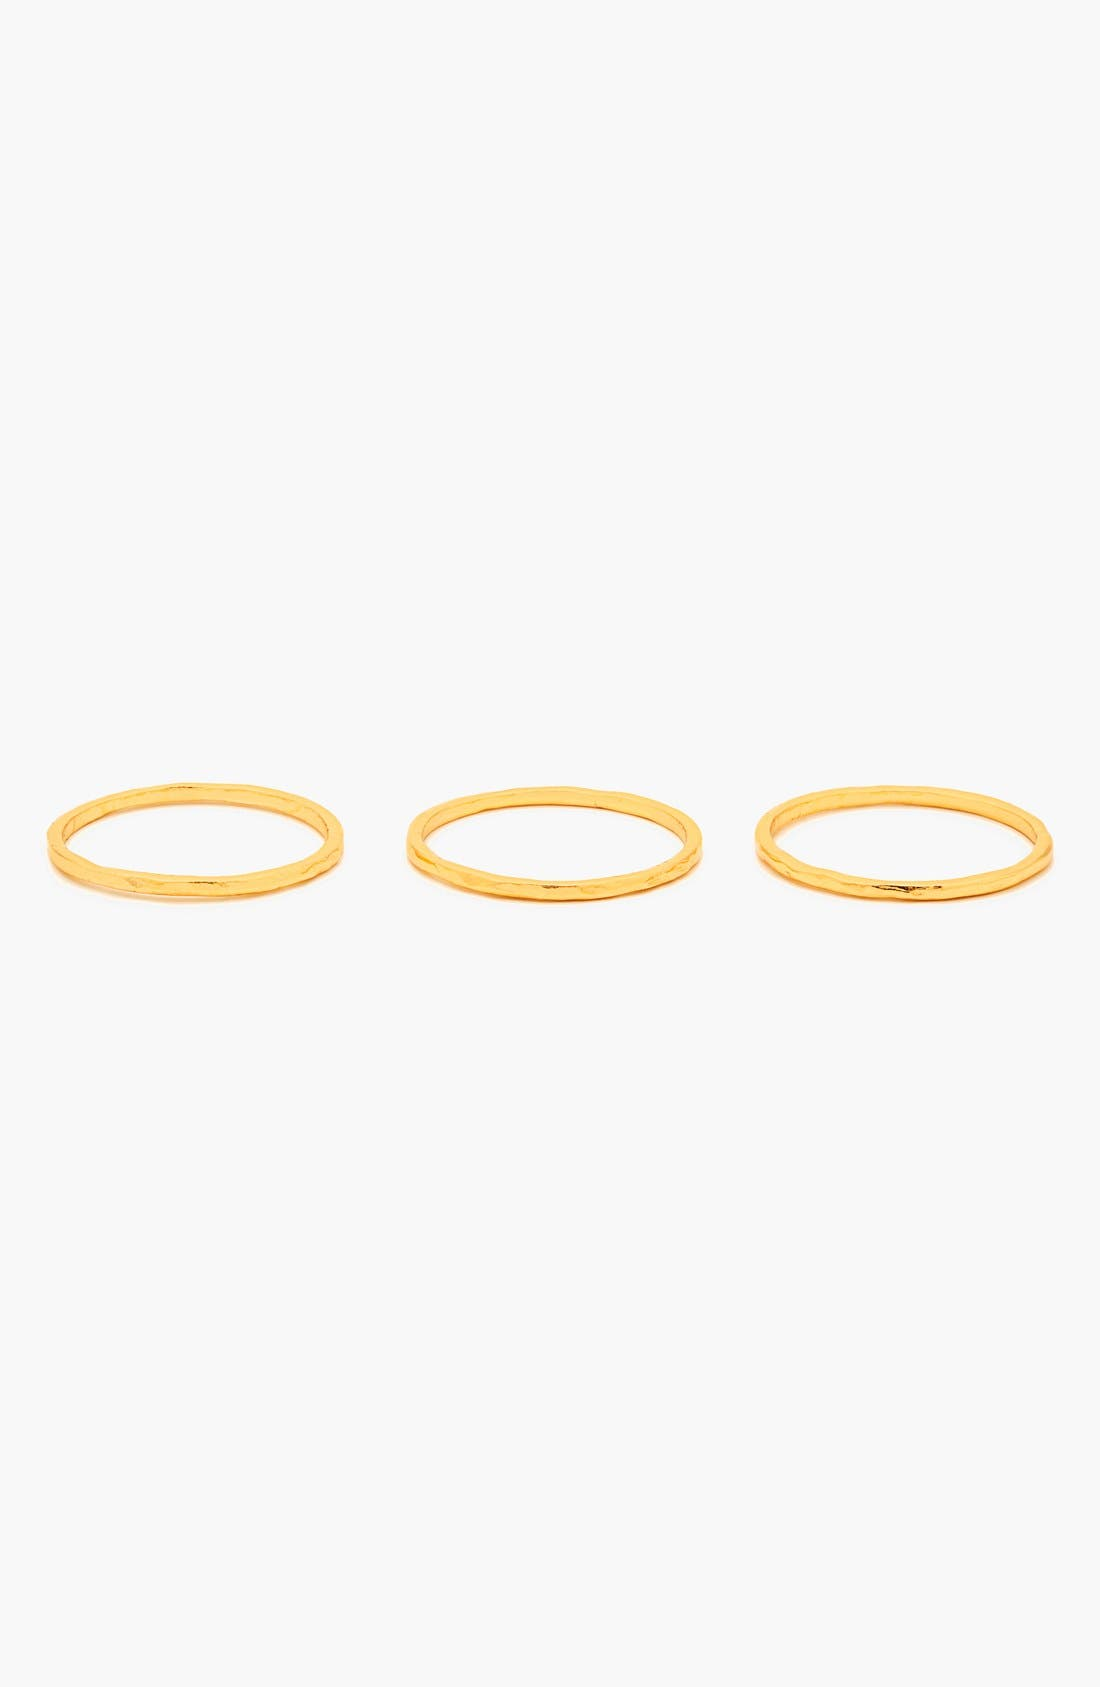 Alternate Image 3  - gorjana 'G Ring' Hammered Stack Rings (Set of 3)